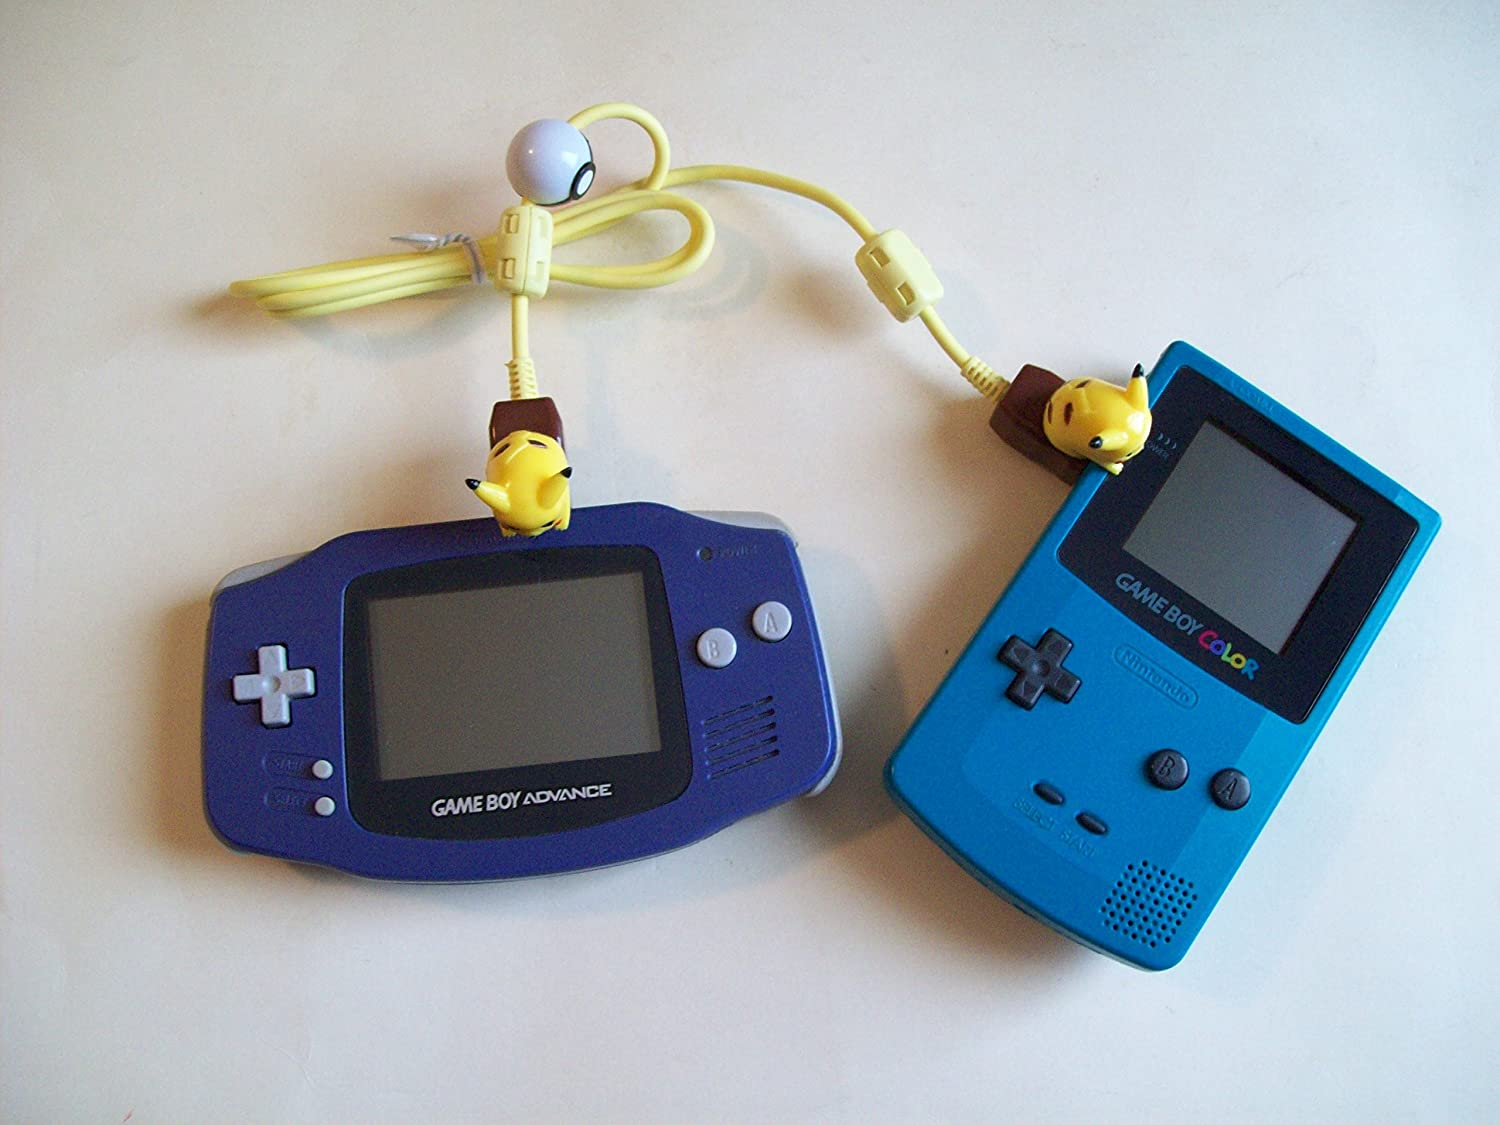 Game boy color link cable - Amazon Com Link Cable For Game Boy Color Pokemon Pikachu Video Games